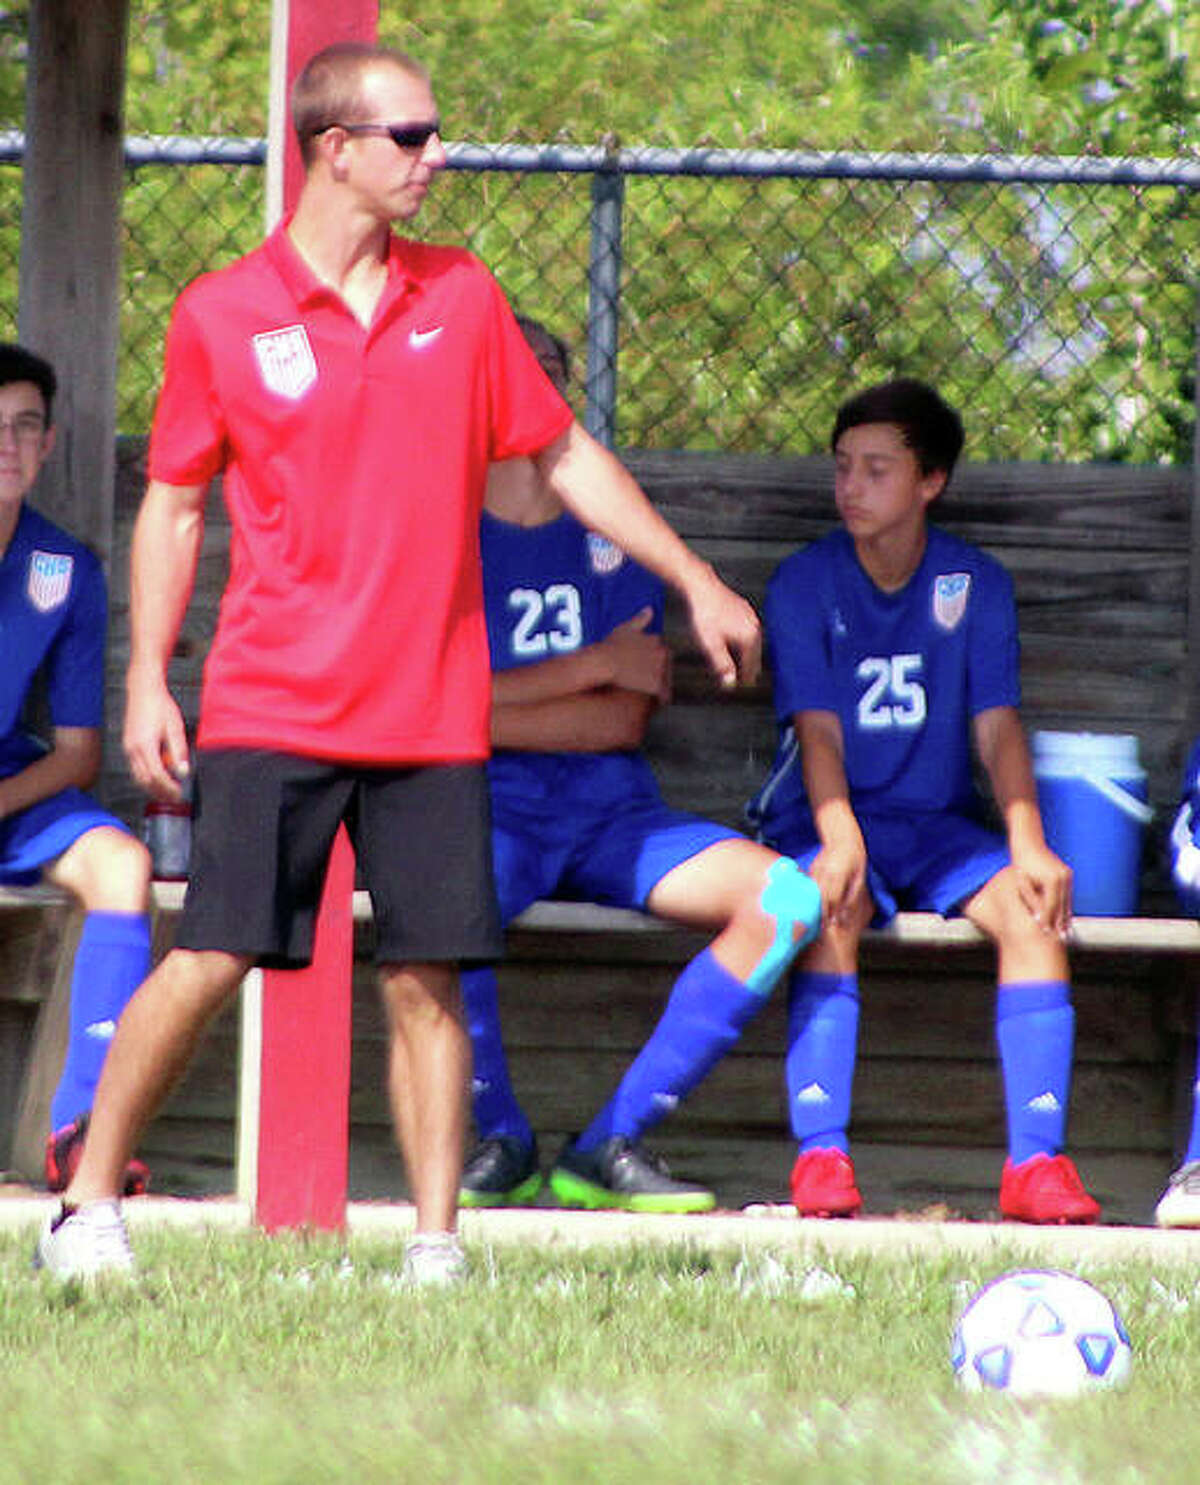 Carlinville soccer coach Tim Johnson's team is off to a 6-0 start after winning the championship game of its own tournament Wednesday with a 1-0 win over Hillsboro. Johnson is shown during a 2018 game.